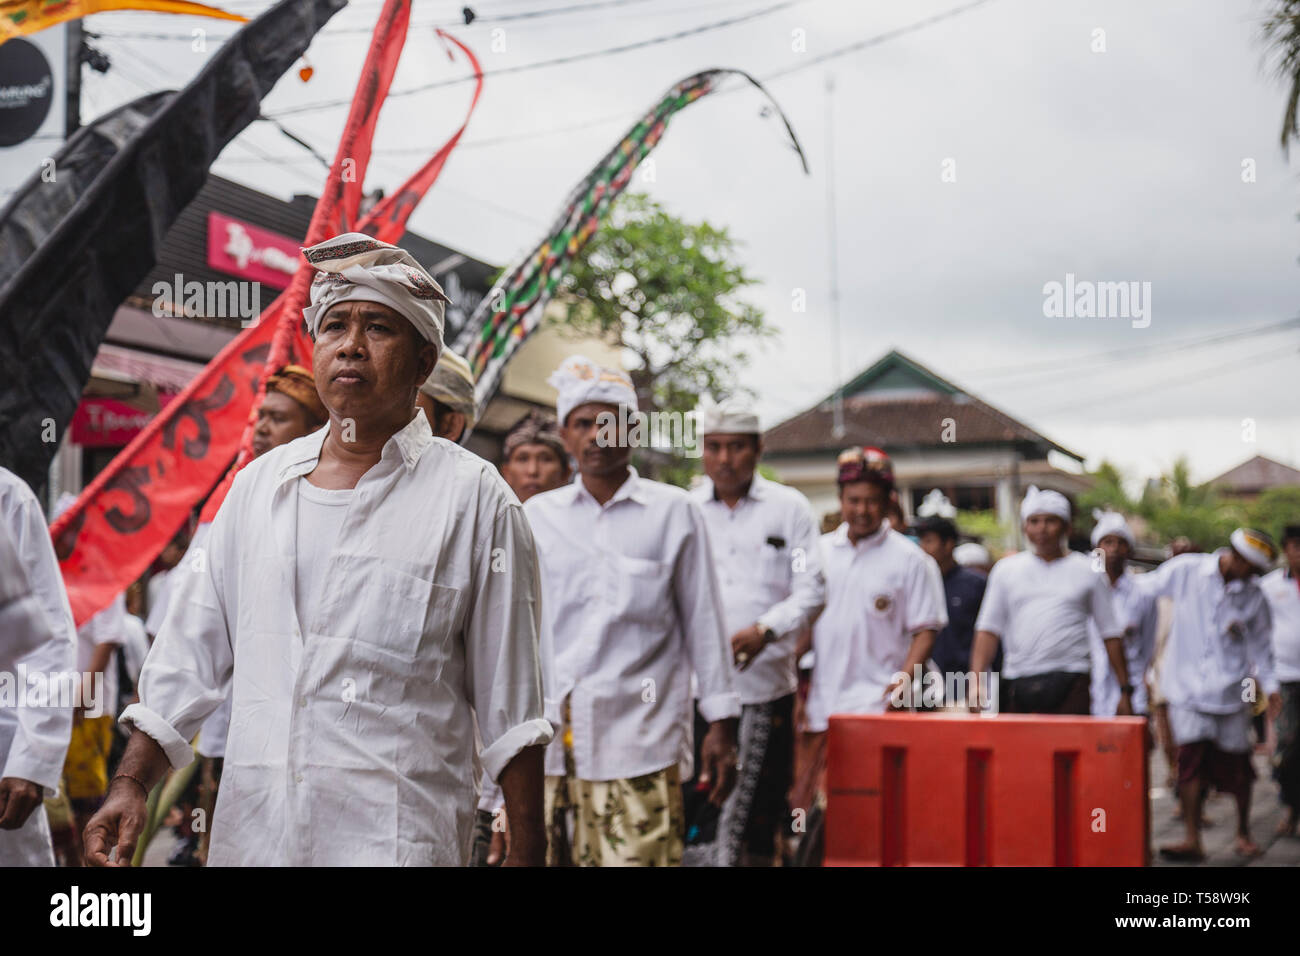 Worshipers Marching to a Temple during a Festival in Bali, Indonesia - Stock Image